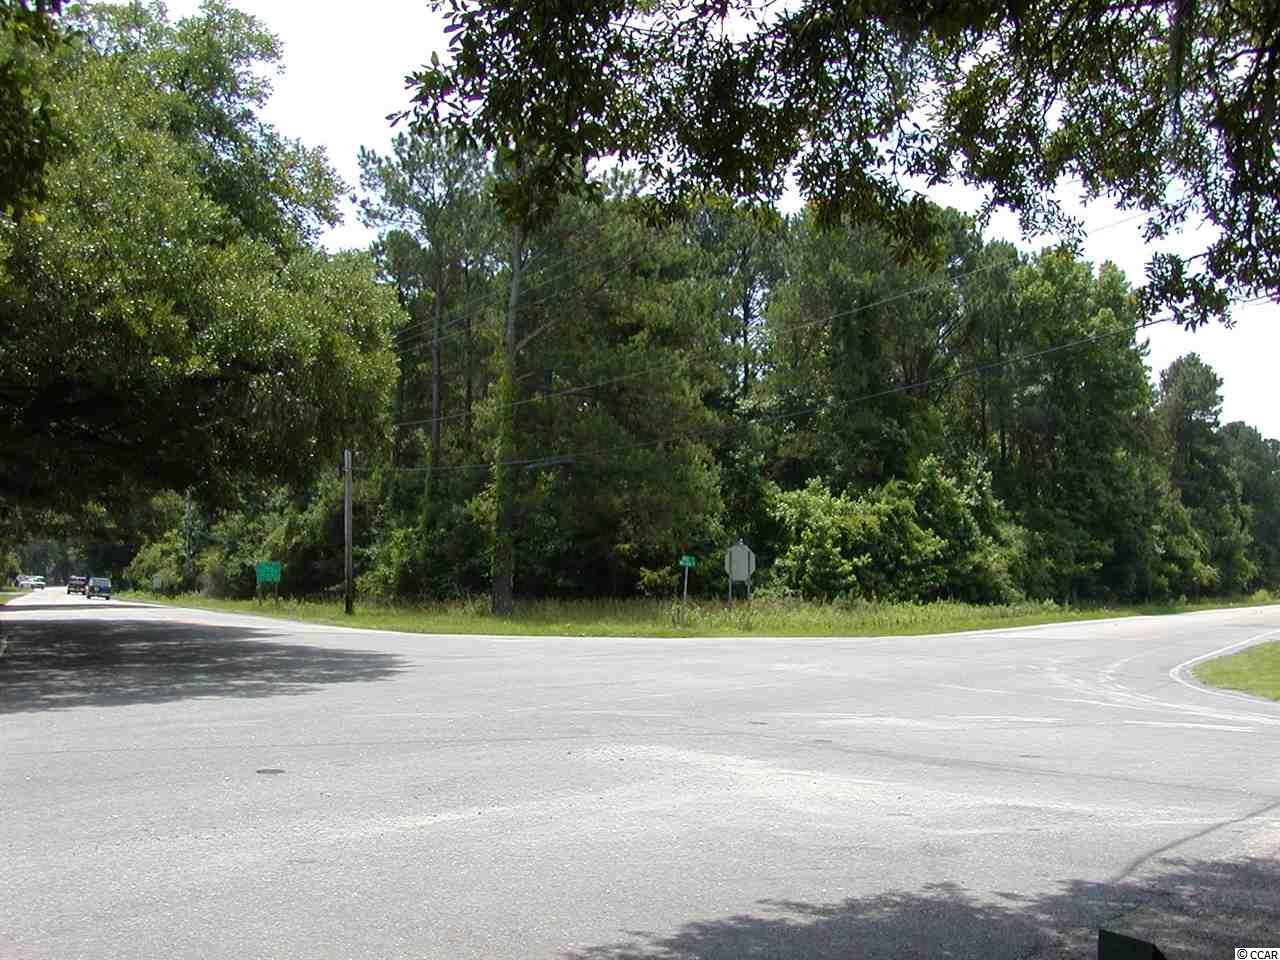 3.28 wooded acres with cleared underbrush. Premium location surrounded by Live Oaks and near all that Pawleys Island has to offer including multiple golf courses, beaches, rivers, shopping, dining, bike paths, gardens and much more.  Zoned as Flexible Design Development District.  Perfect for multi family units.  Please see proposed design created by one of the counties top design/developers which has already been approved by Georgetown Planning & Zoning and Georgetown County Council.